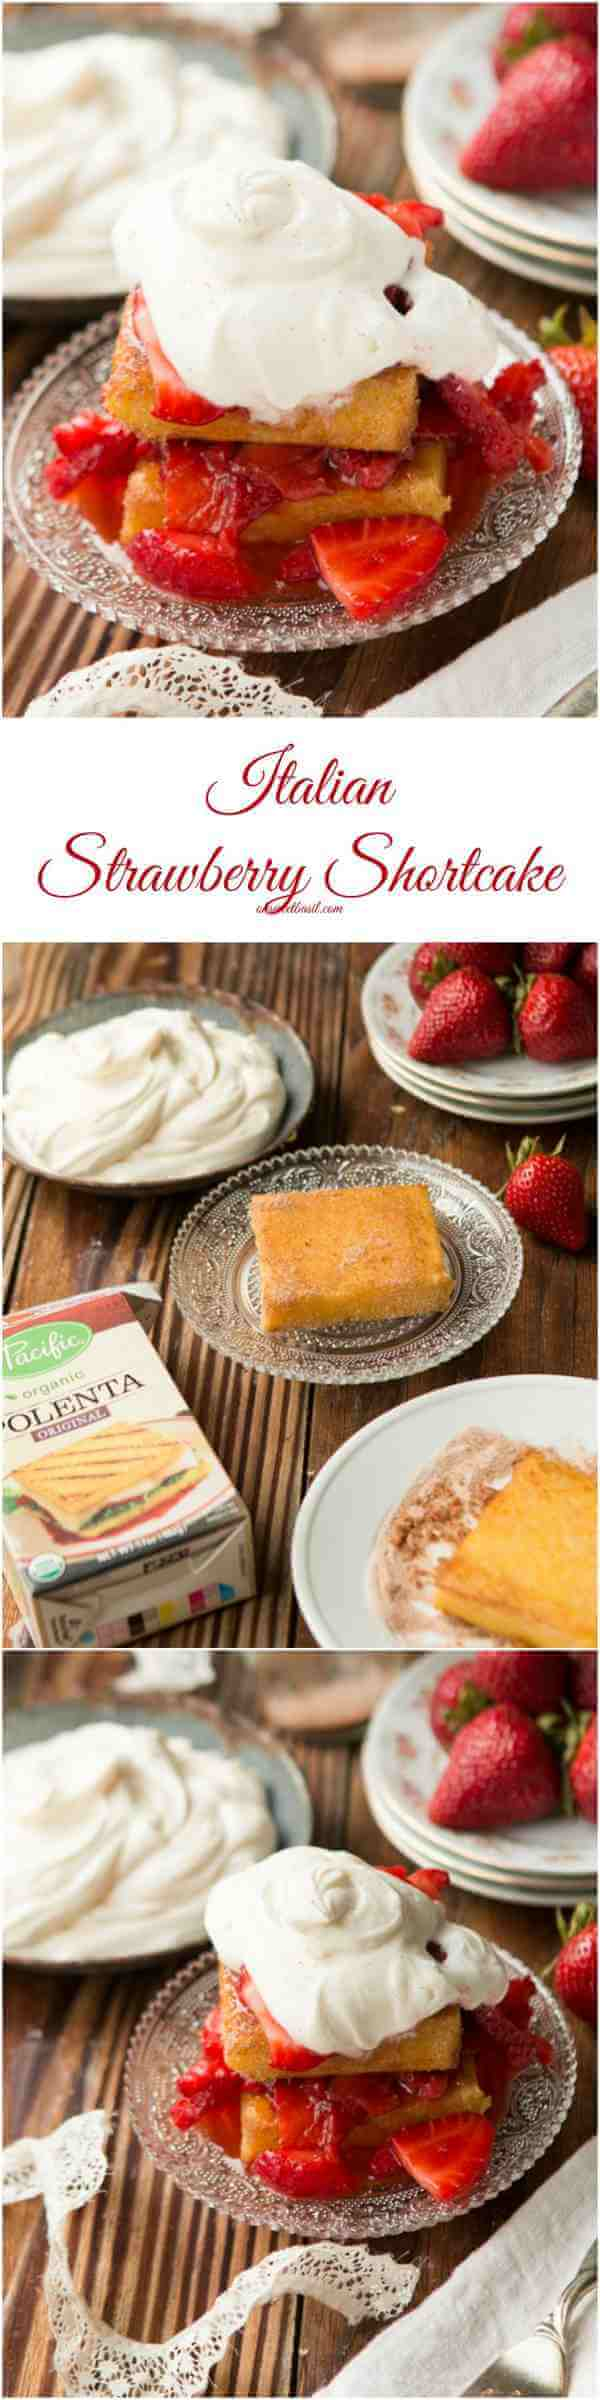 I cannot even tell you how amazing this Italian Strawberry Shortcake is. You HAVE to try it! ohsweetbasil.com